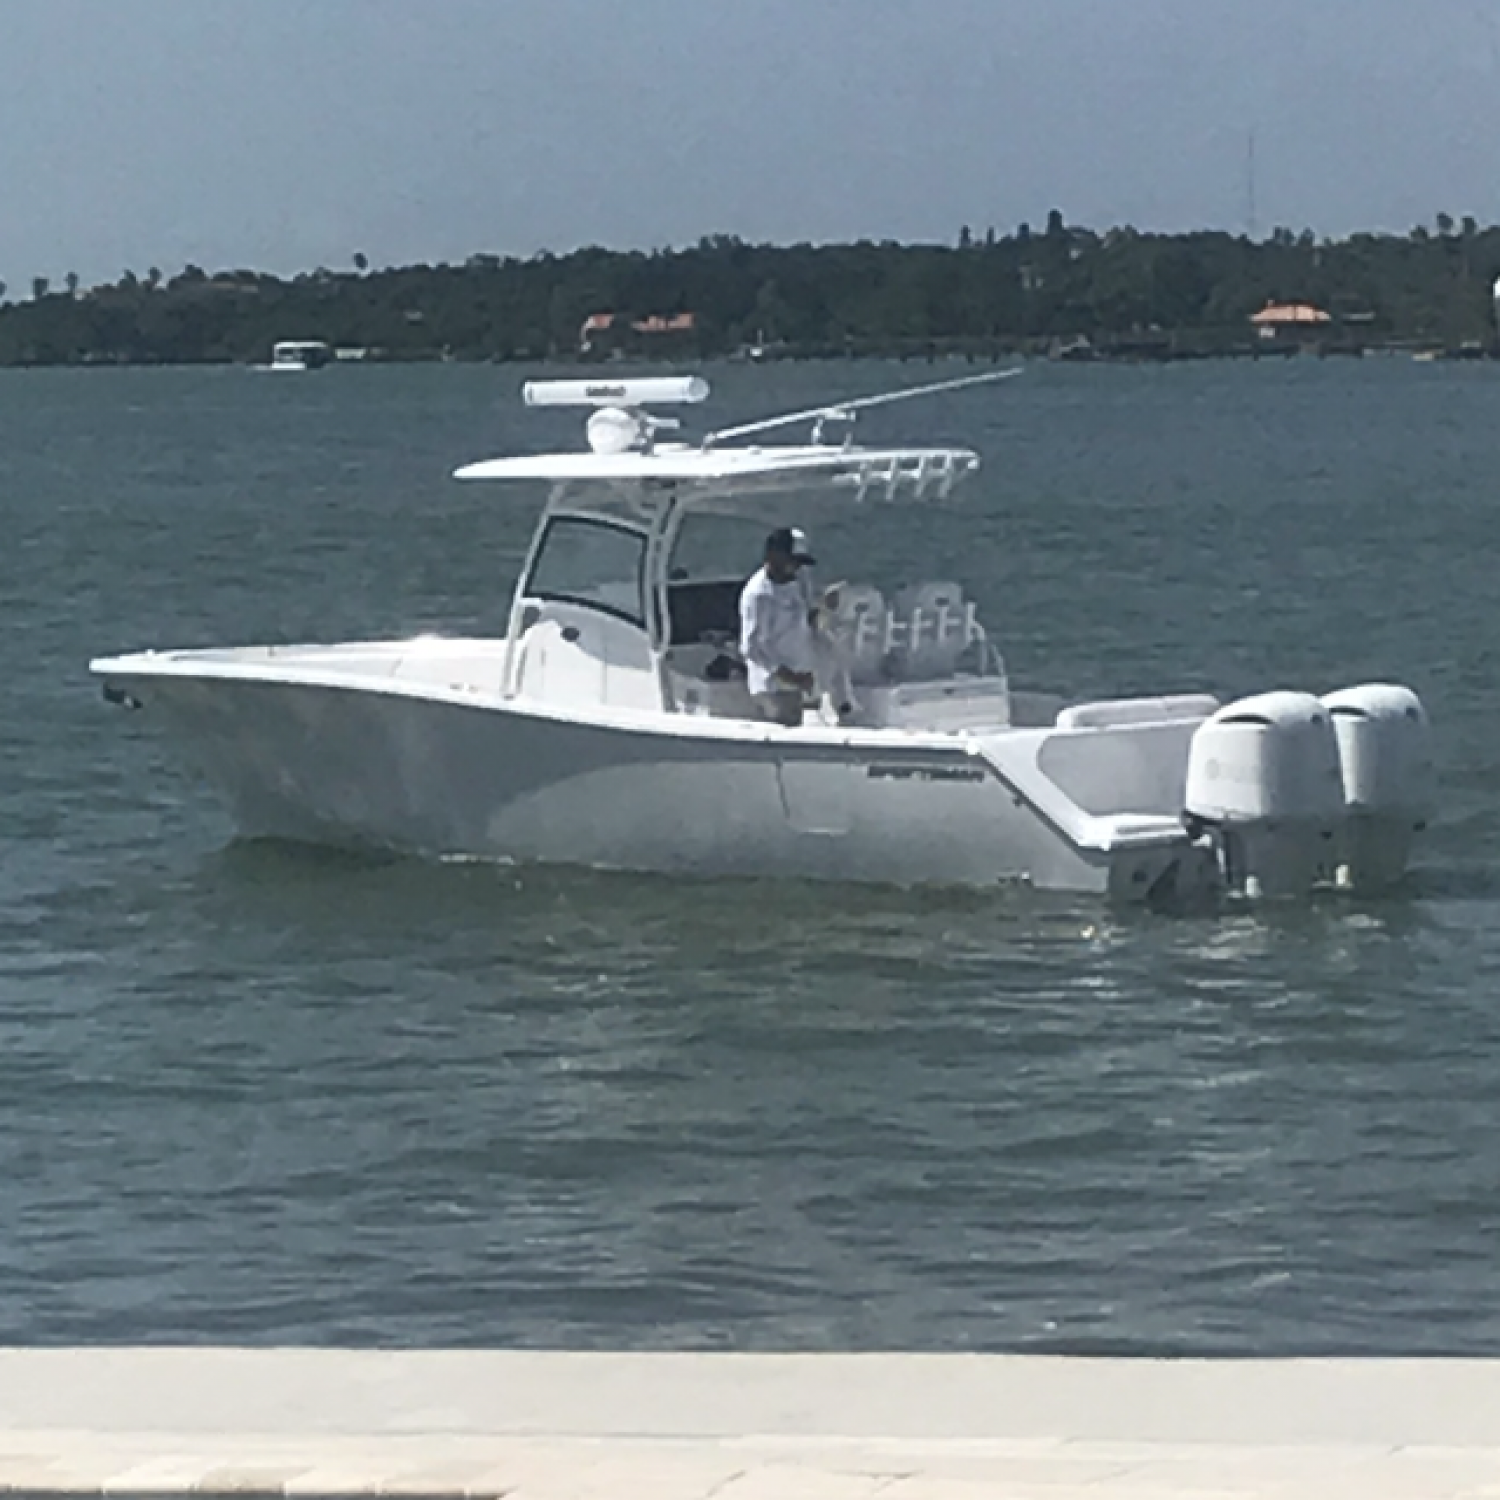 Title: Leaving port - On board their Sportsman Open 312 Center Console - Location: St. Petersburg Florida. Participating in the Photo Contest #SportsmanAugust2018